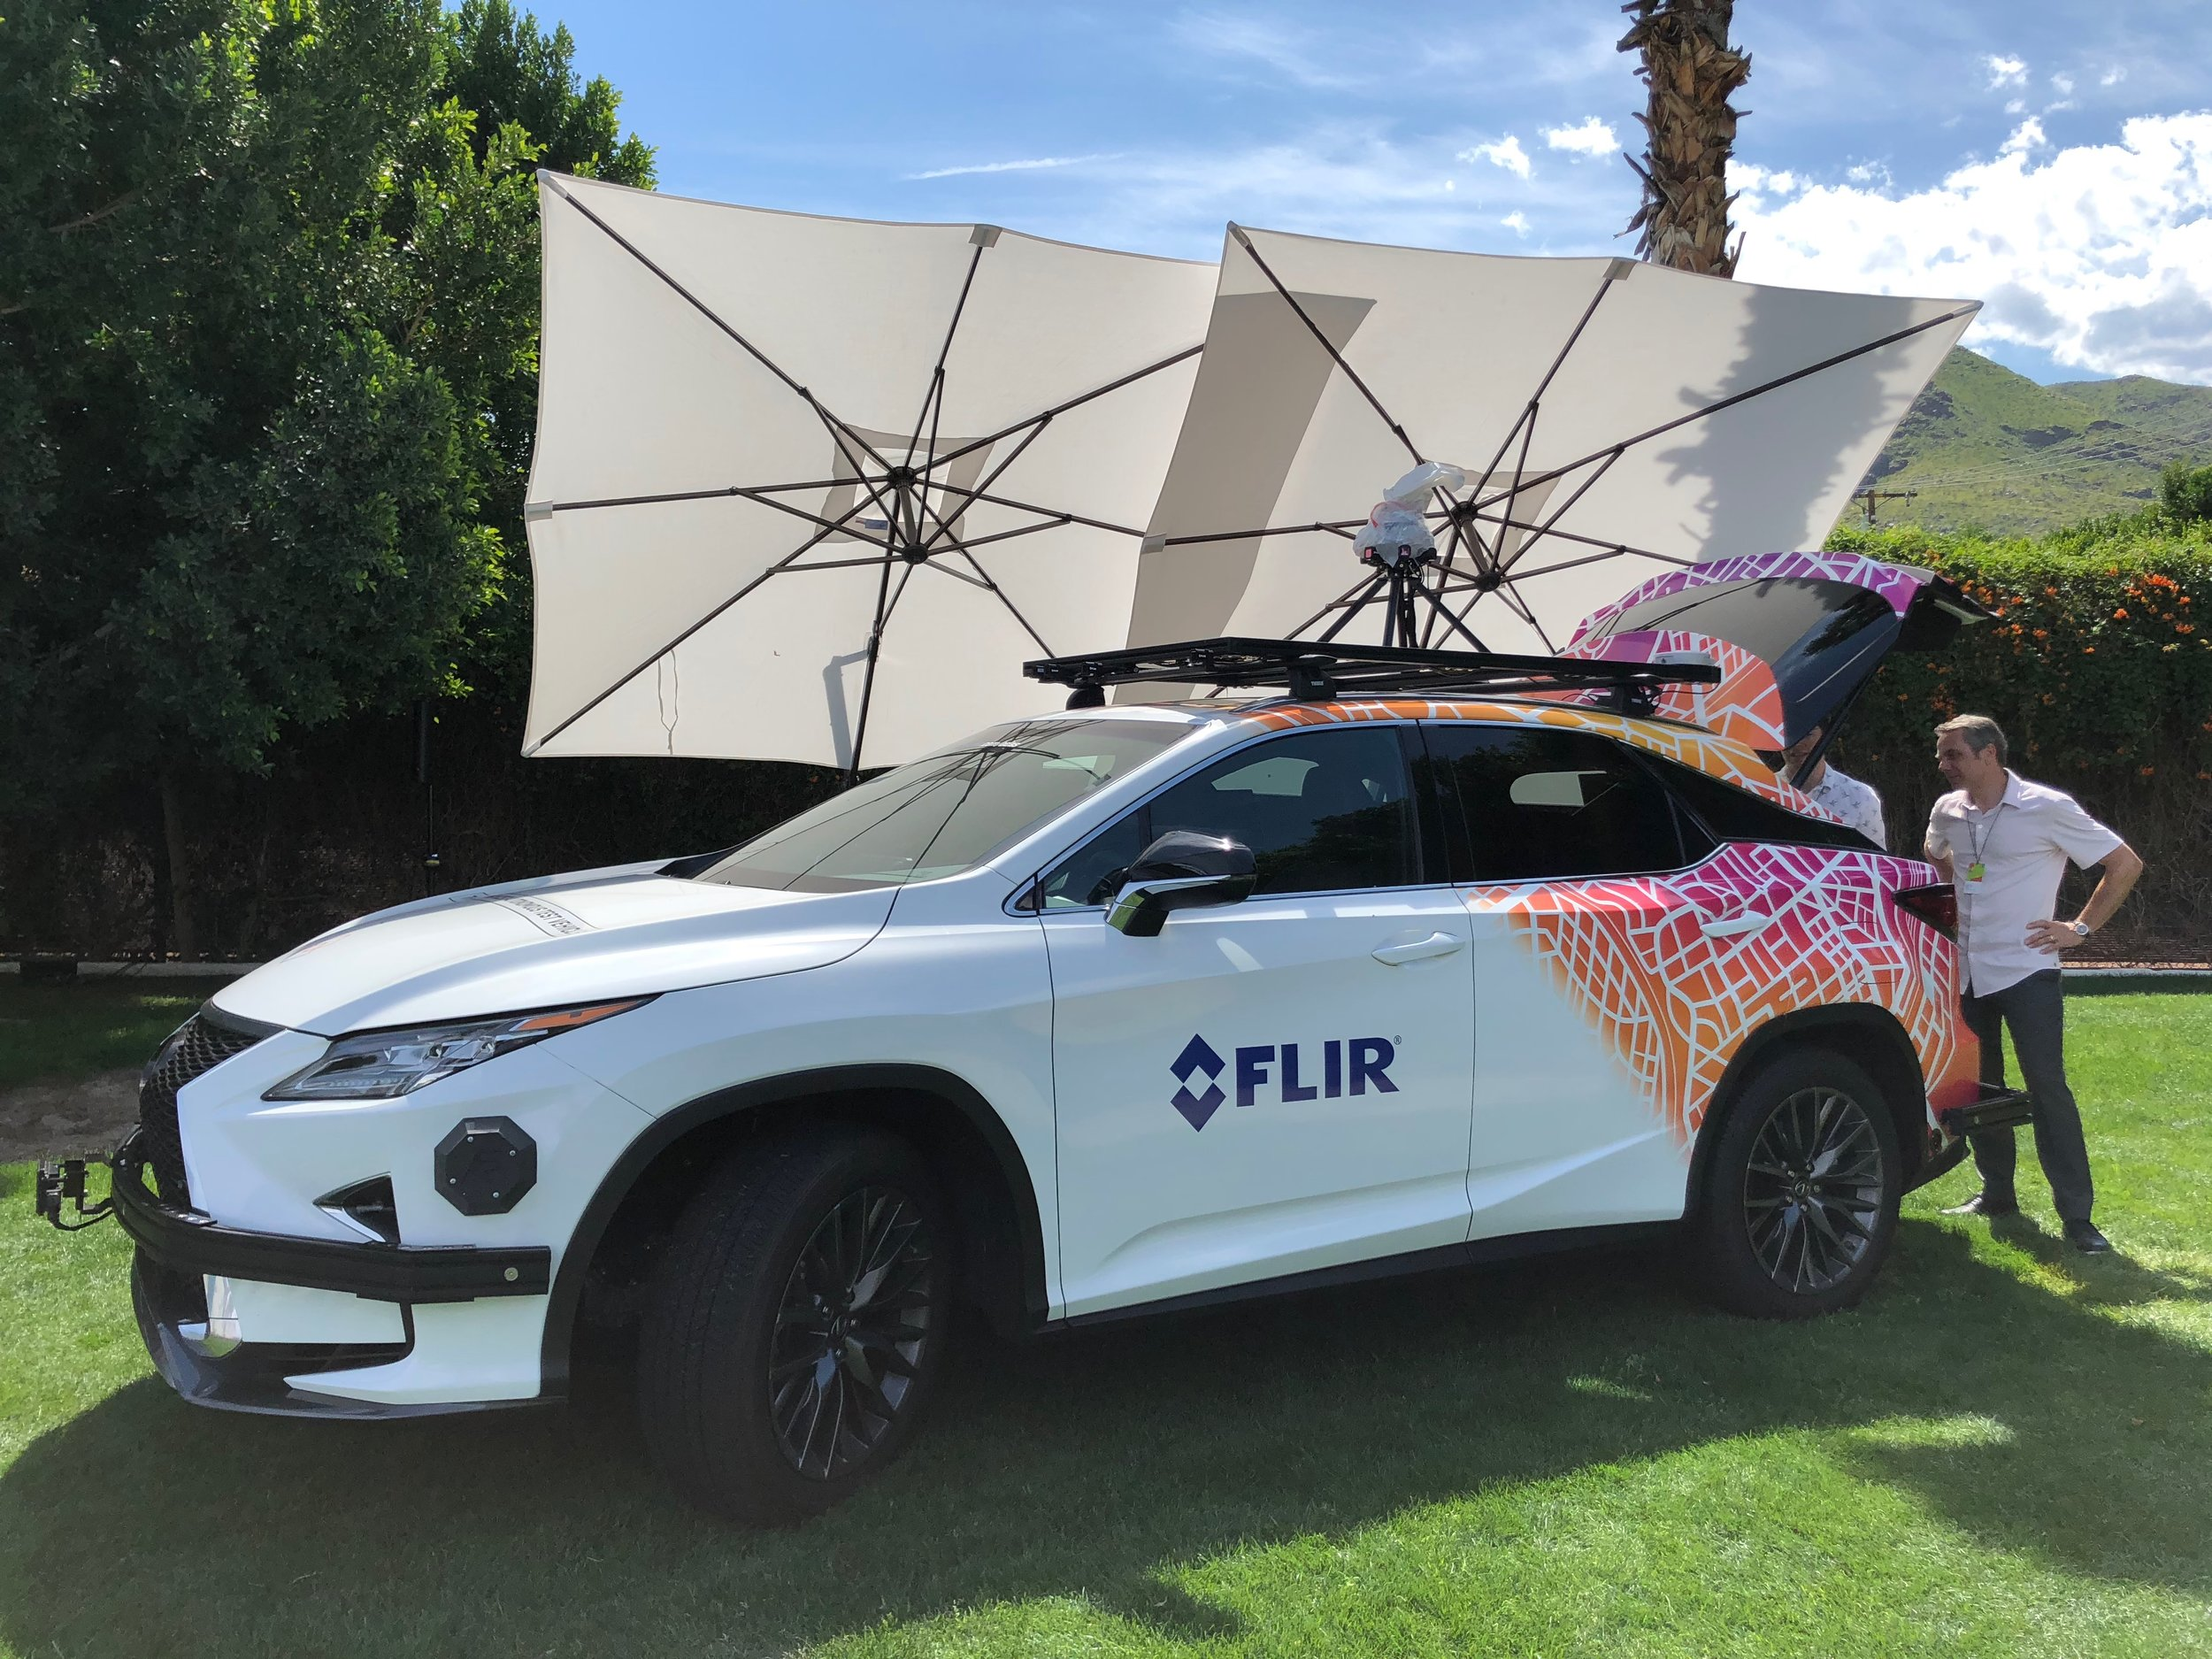 FLIR self driving systems.